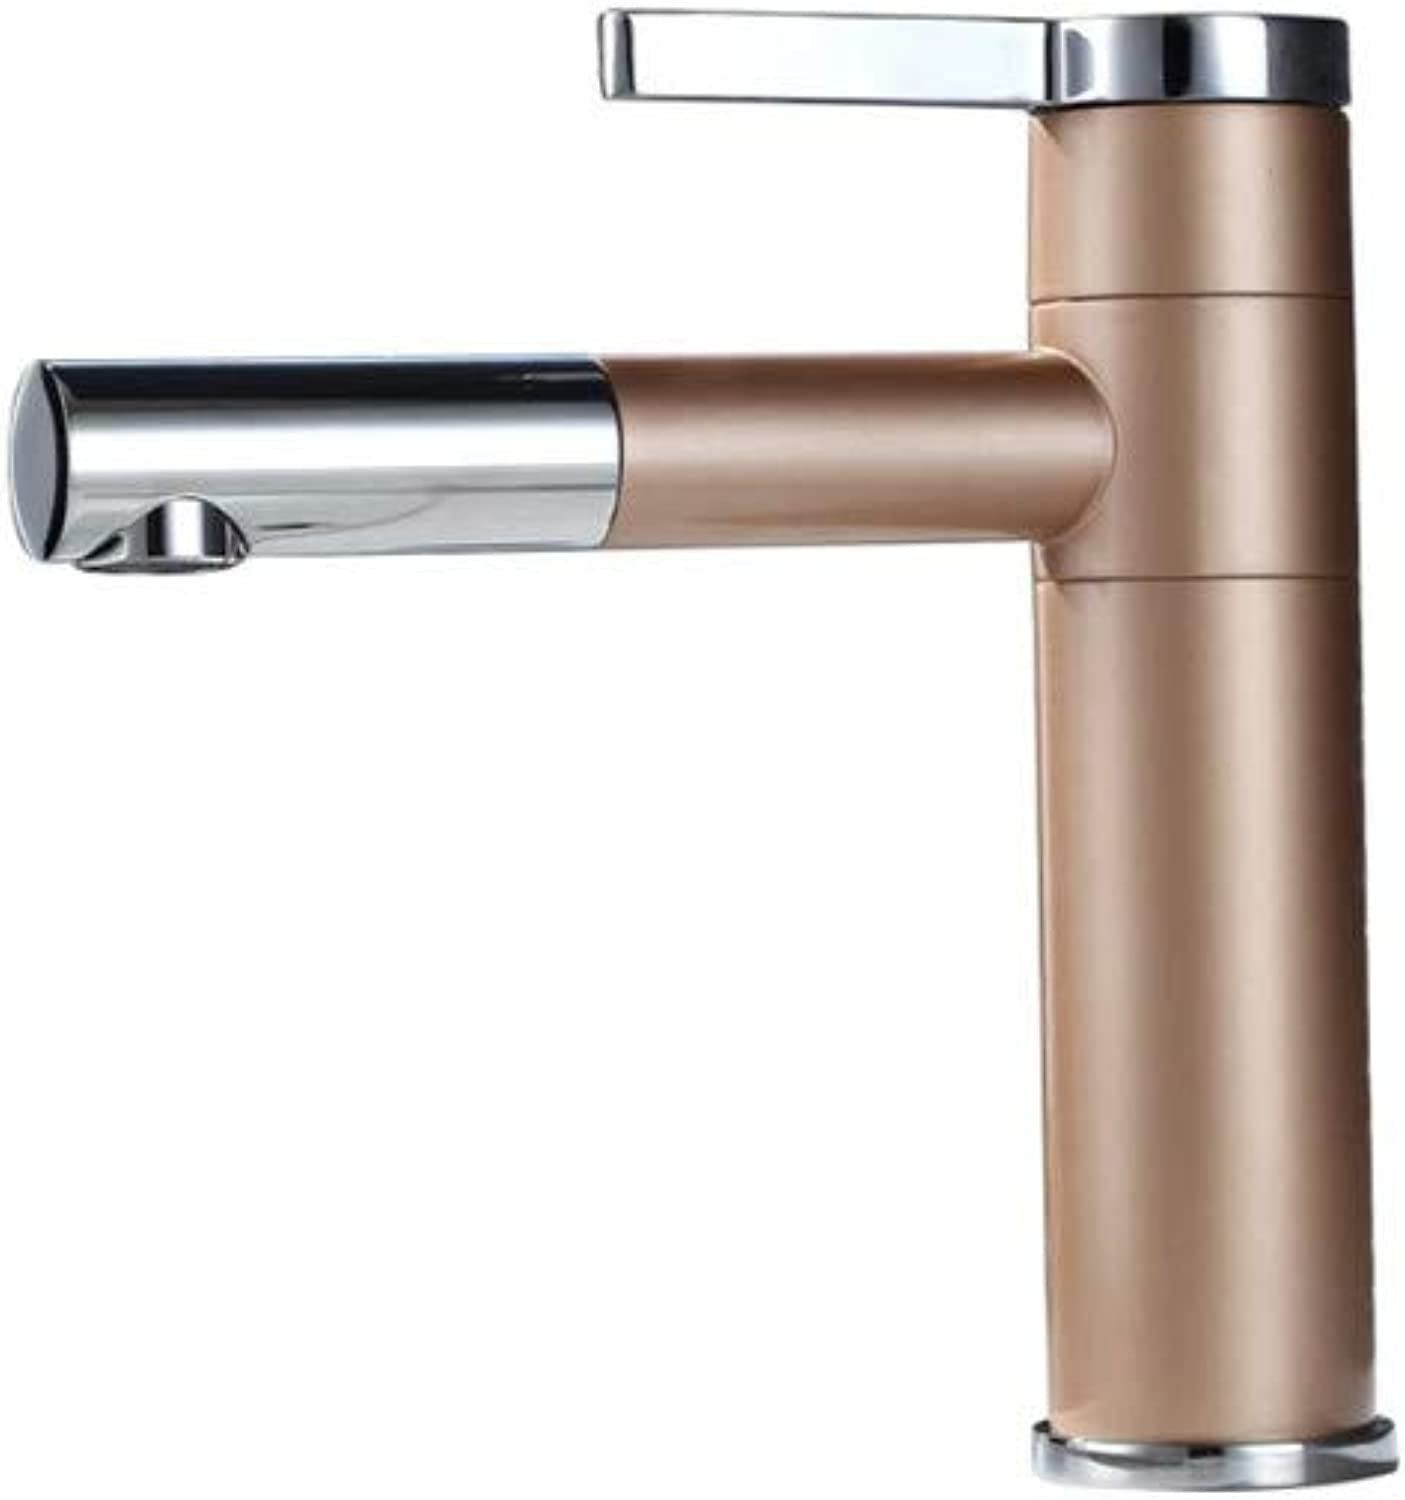 Faucetchampagne gold Basin Faucet Waterfall Bathroom 360 Degree redate Single Handle Sink Mixer Tap,Champagnegold,Short